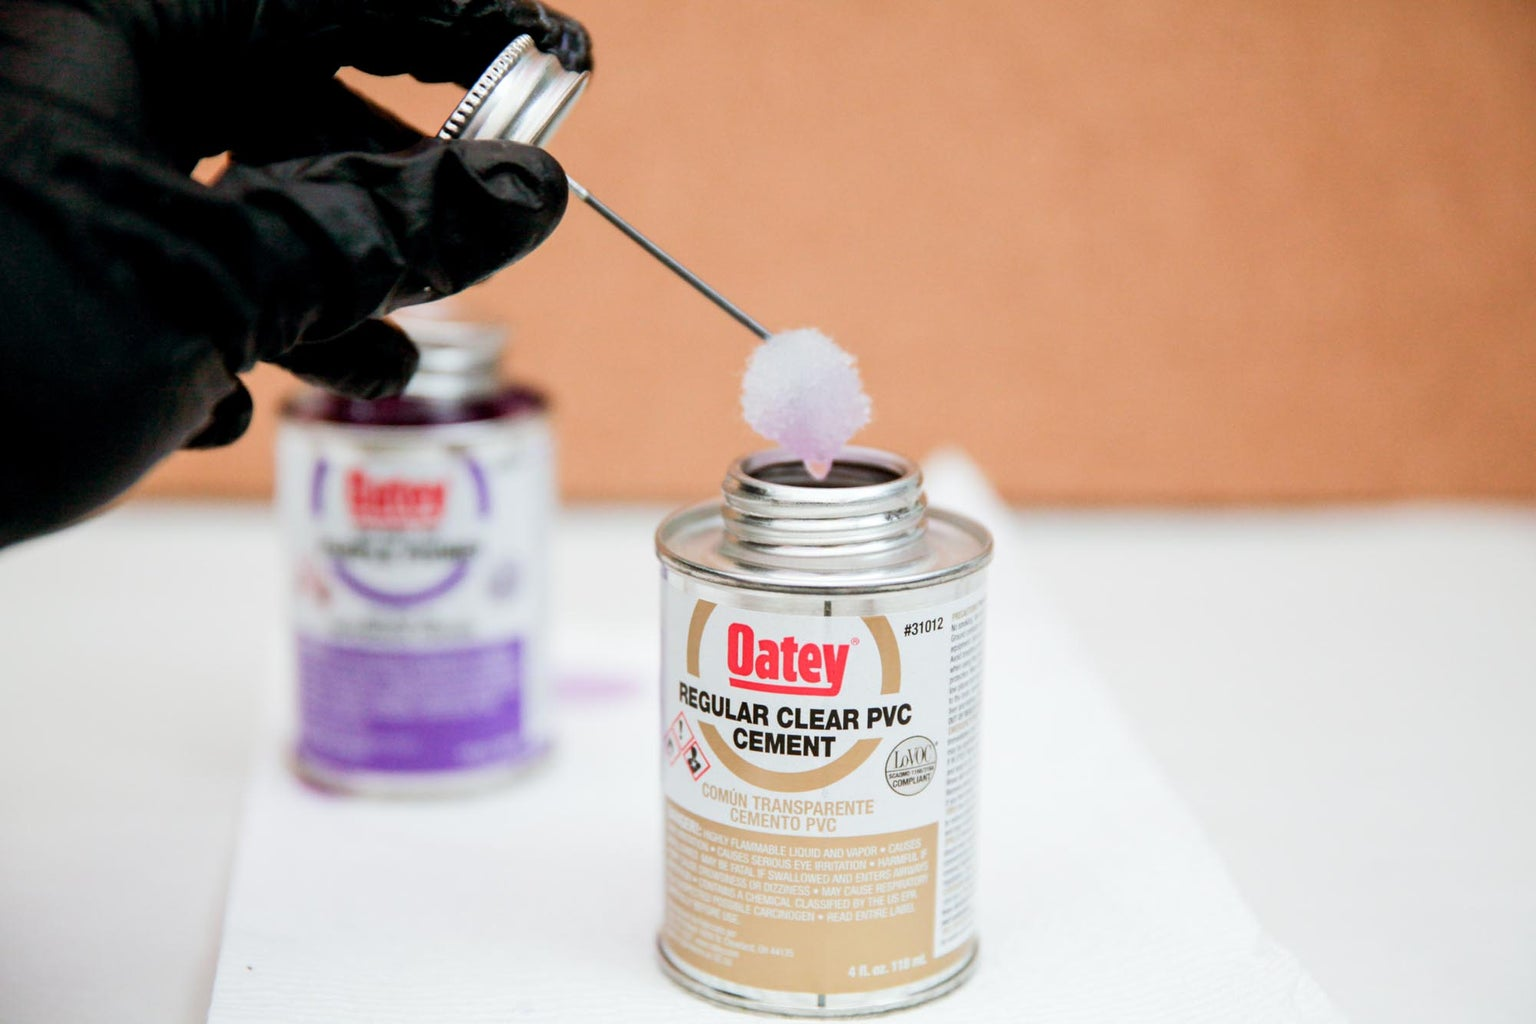 Gluing and Fastening PVC